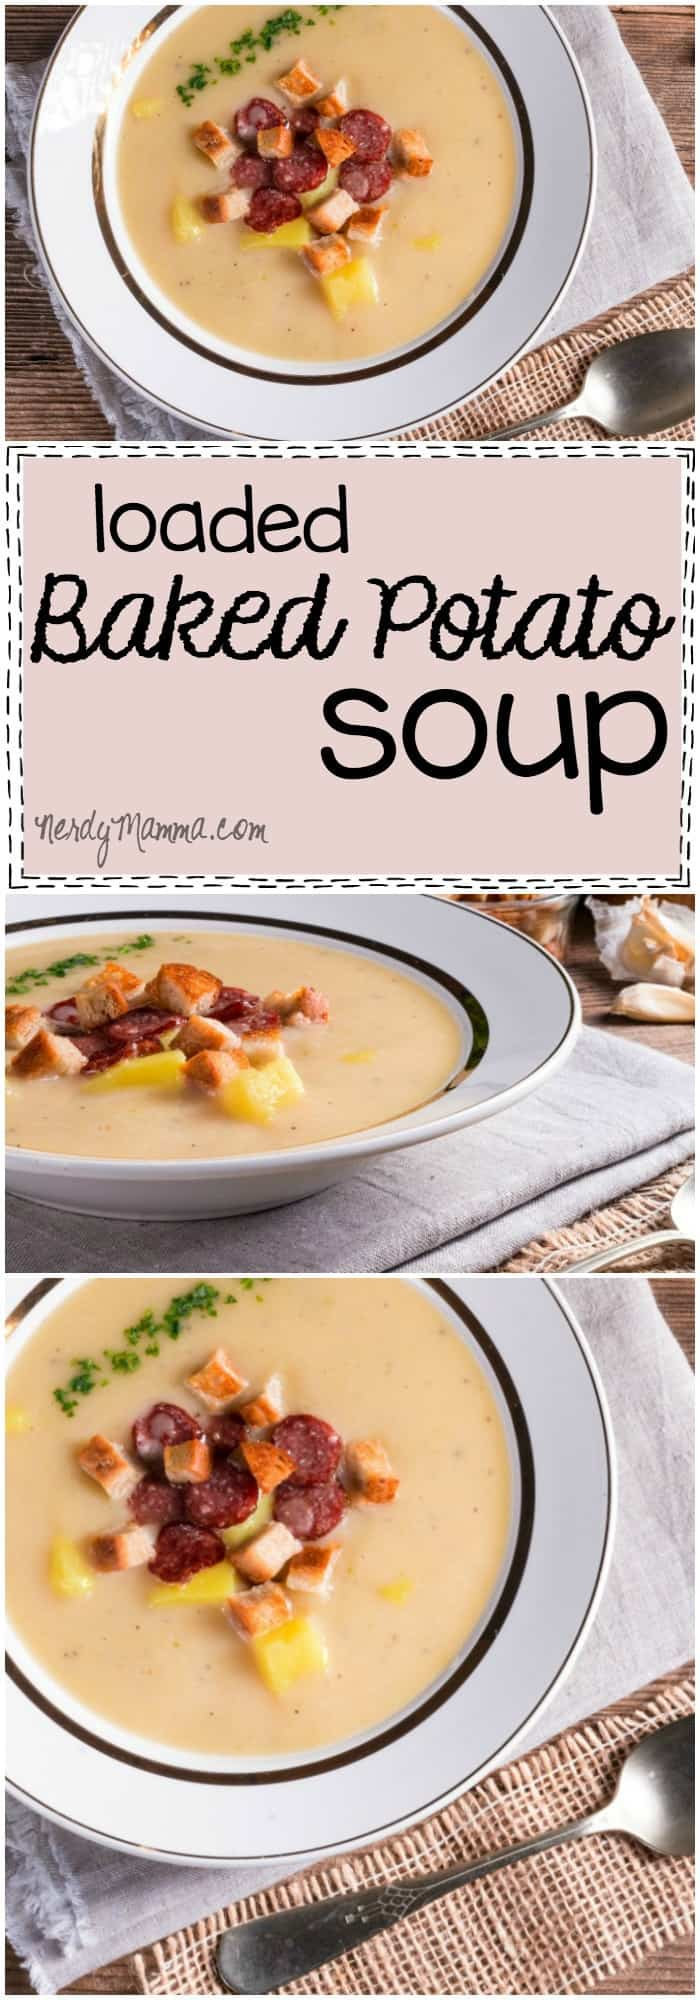 This recipe for loaded baked potato soup sounds so delicious. I think I need to make it...I'm definitely pinning it! LOL!